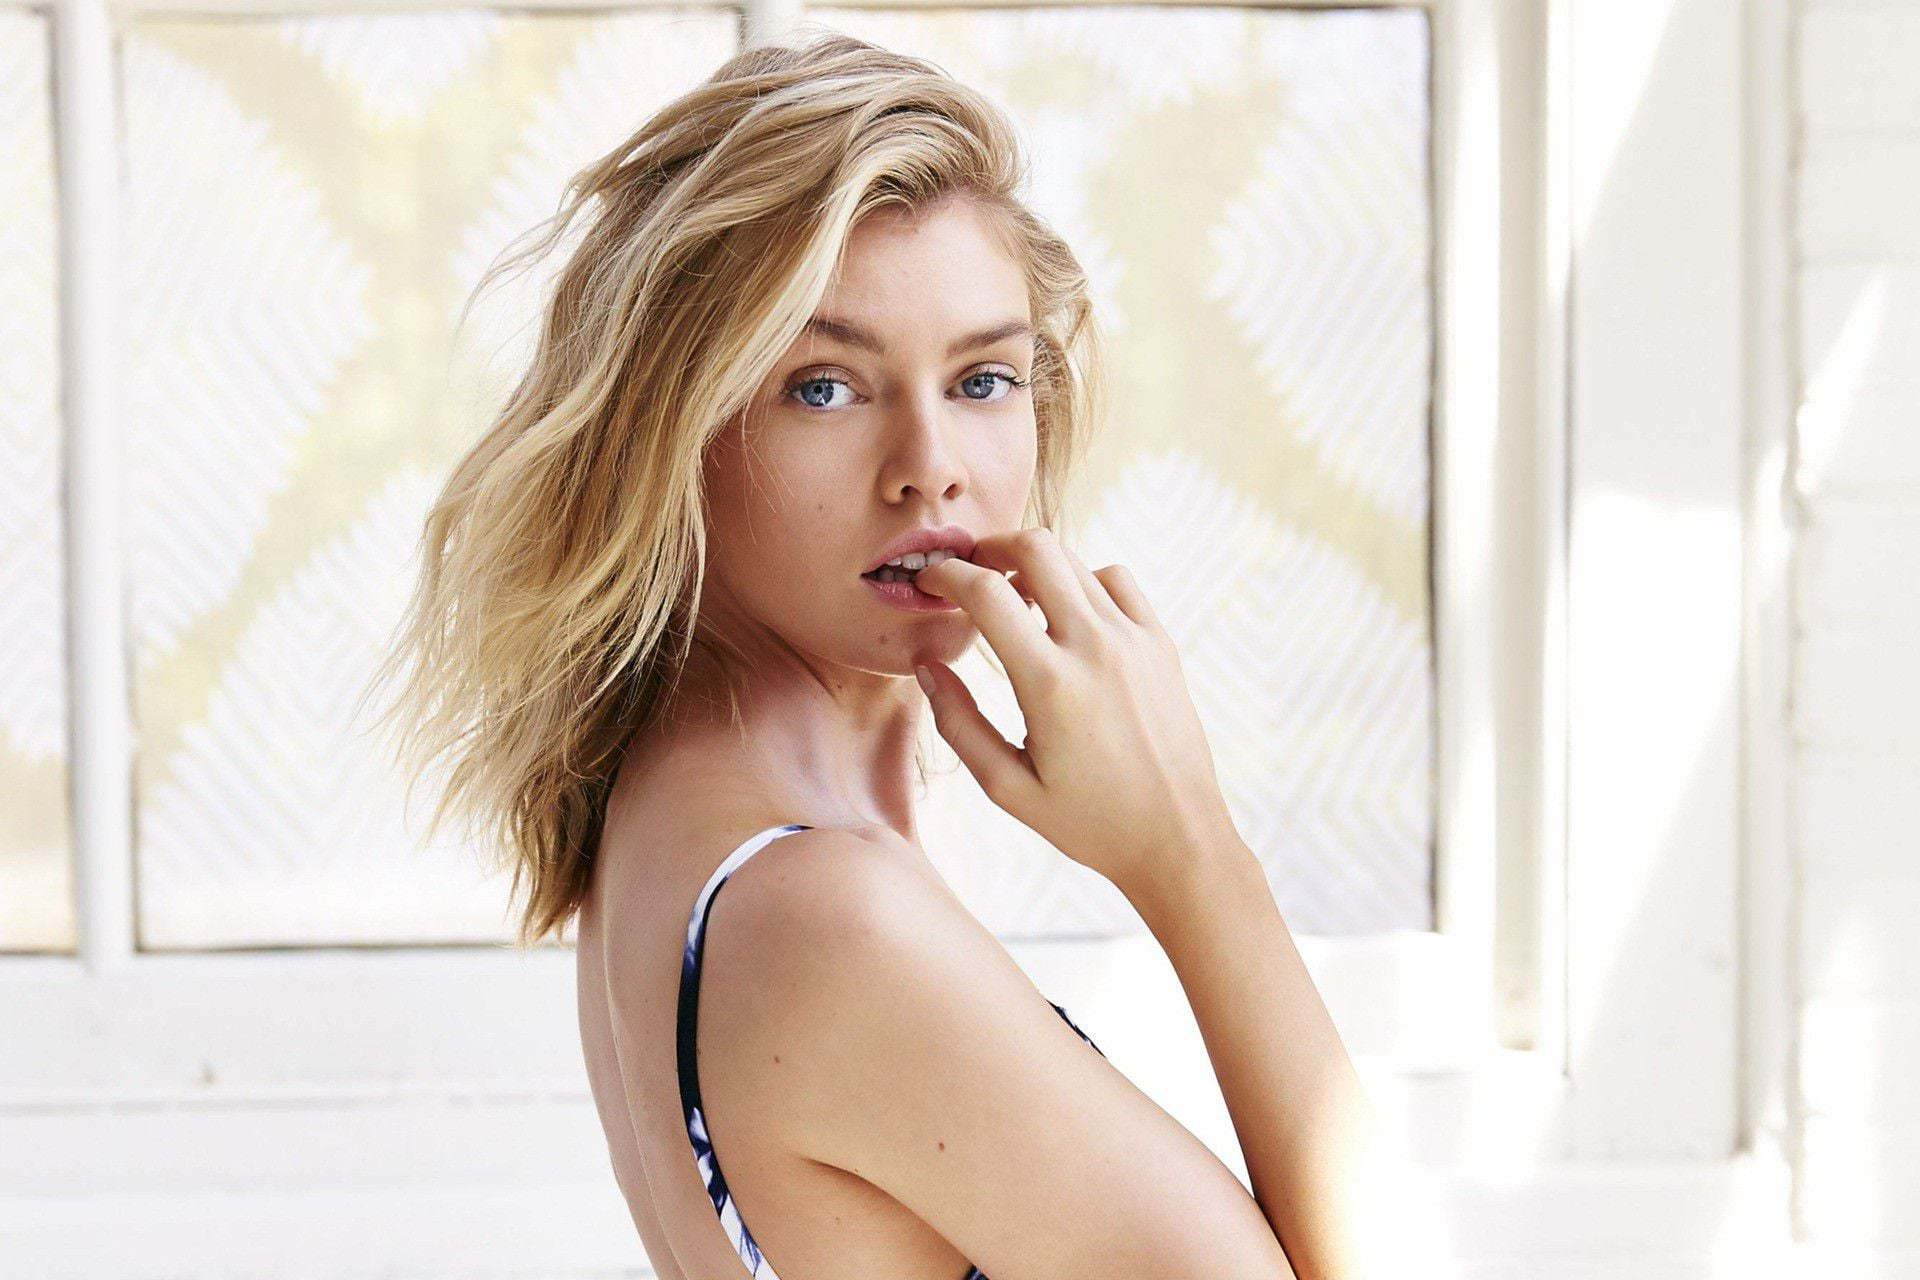 stella maxwell hd wallpapers high quality male models